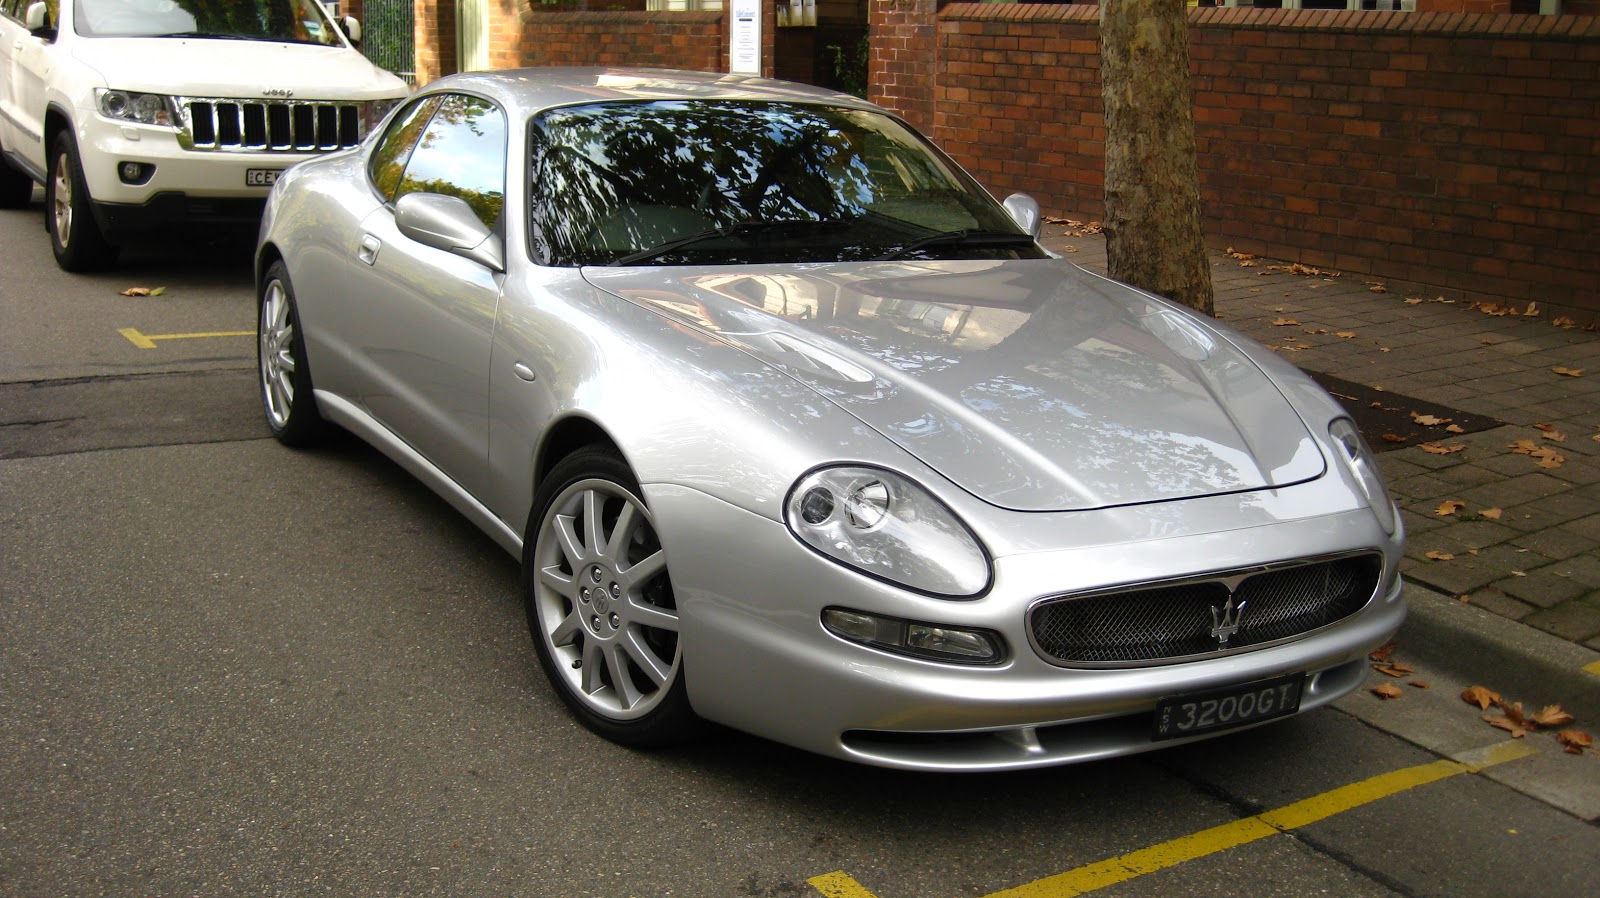 Aussie Old Parked Cars: 2000 Maserati 3200 GT